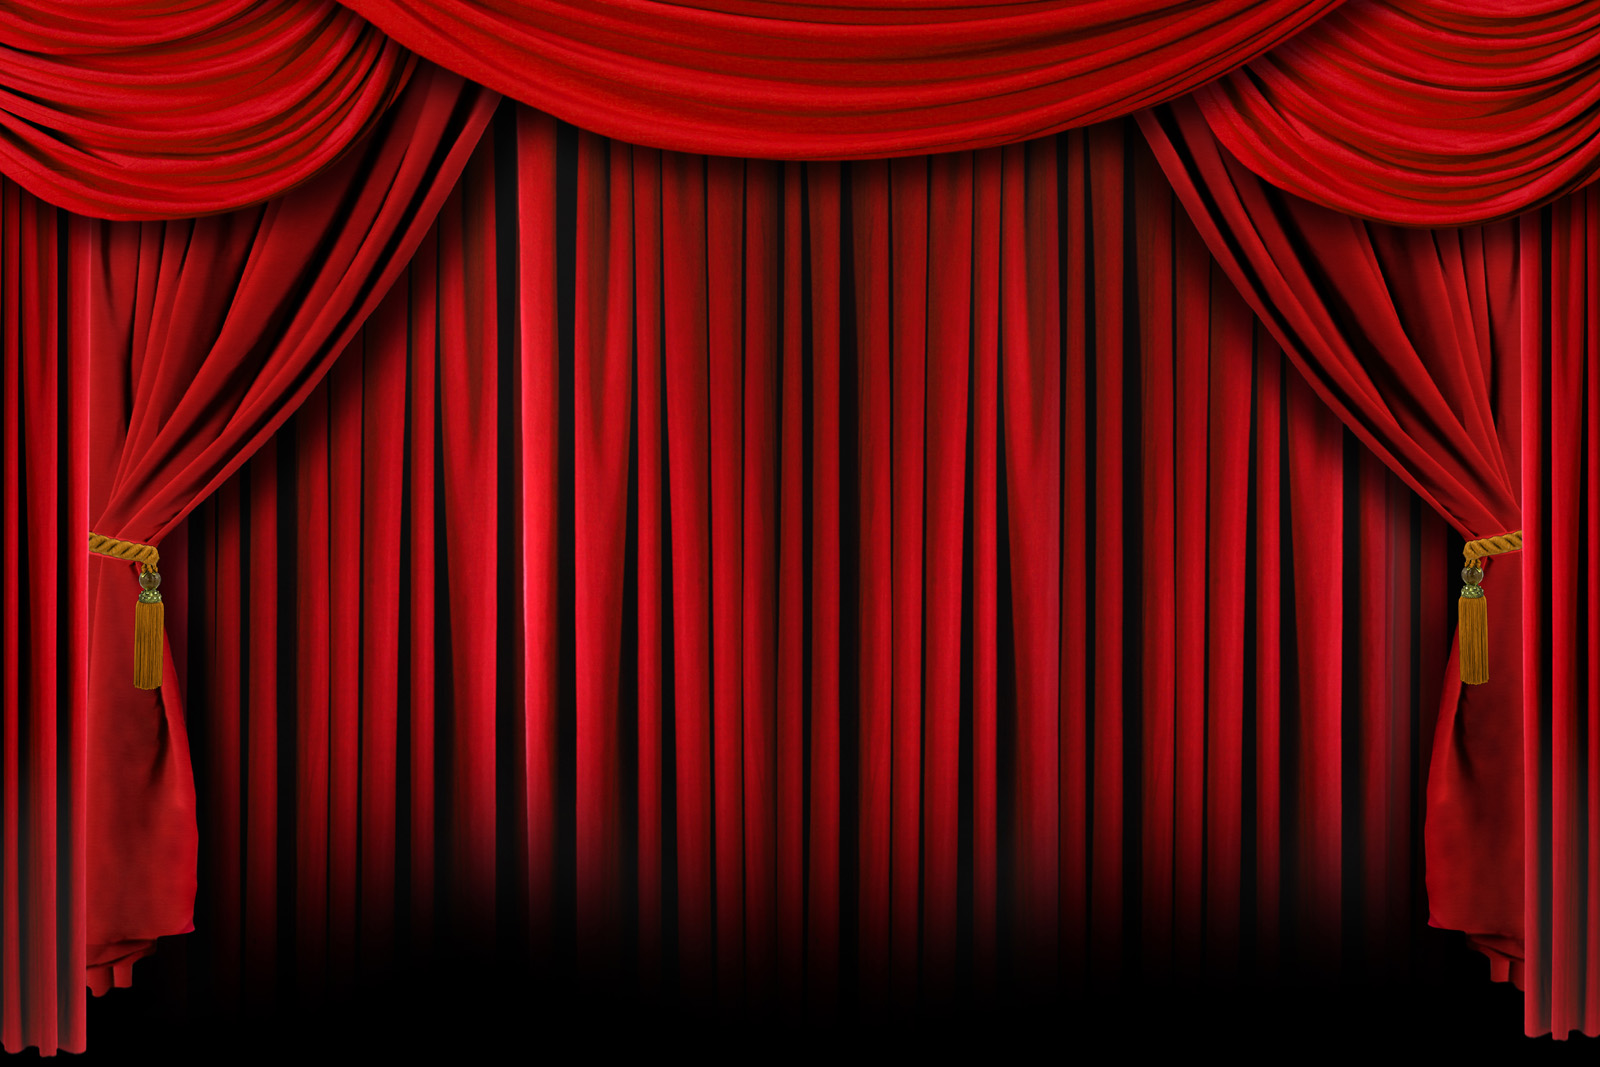 Red curtain curtain 11326